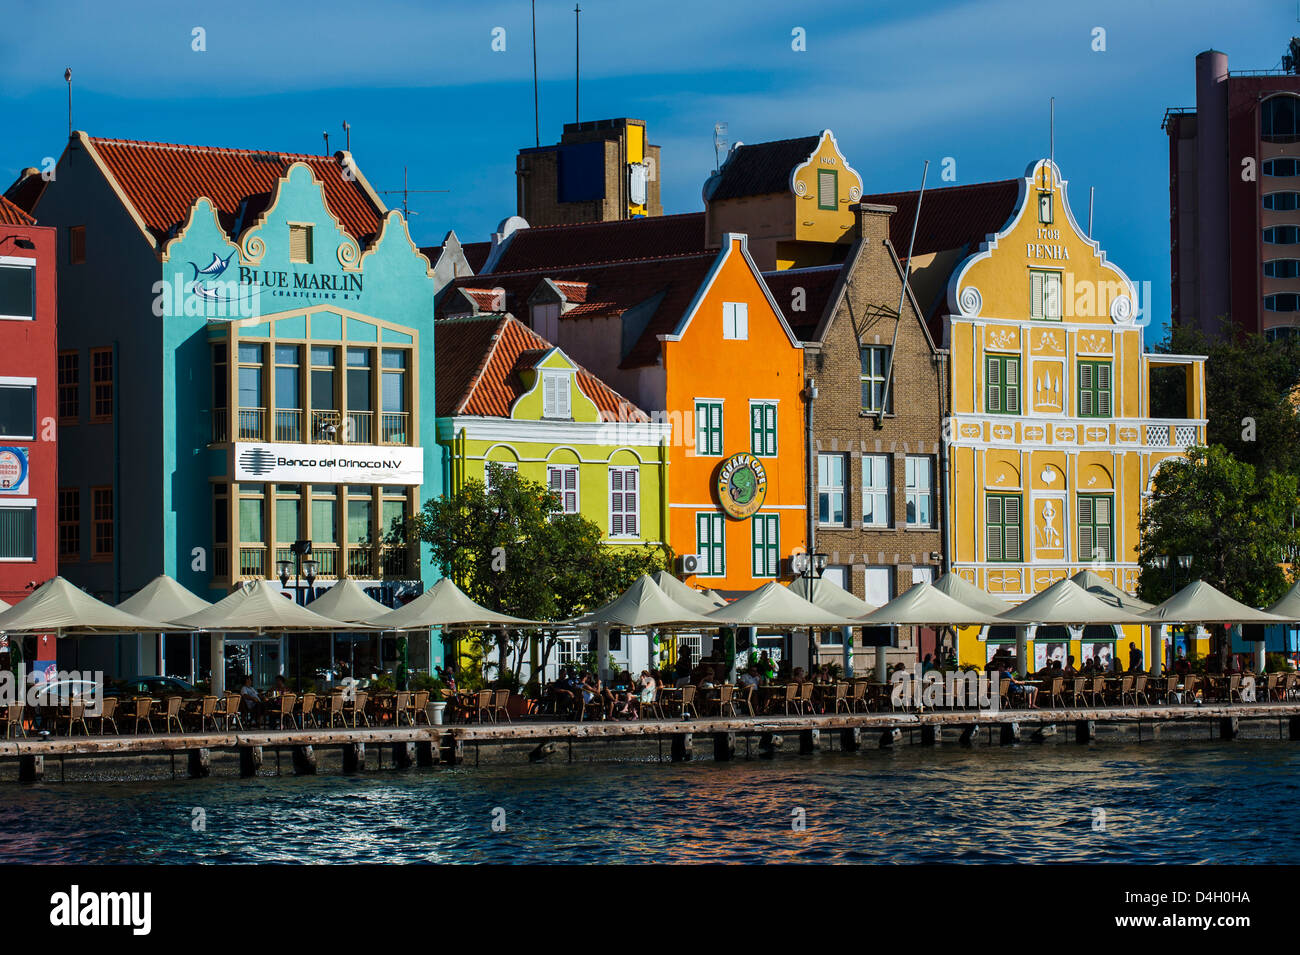 The dutch houses at the Sint Annabaai in Willemstad, UNESCO World Heritage Site, Curacao, ABC Islands, Caribbean - Stock Image